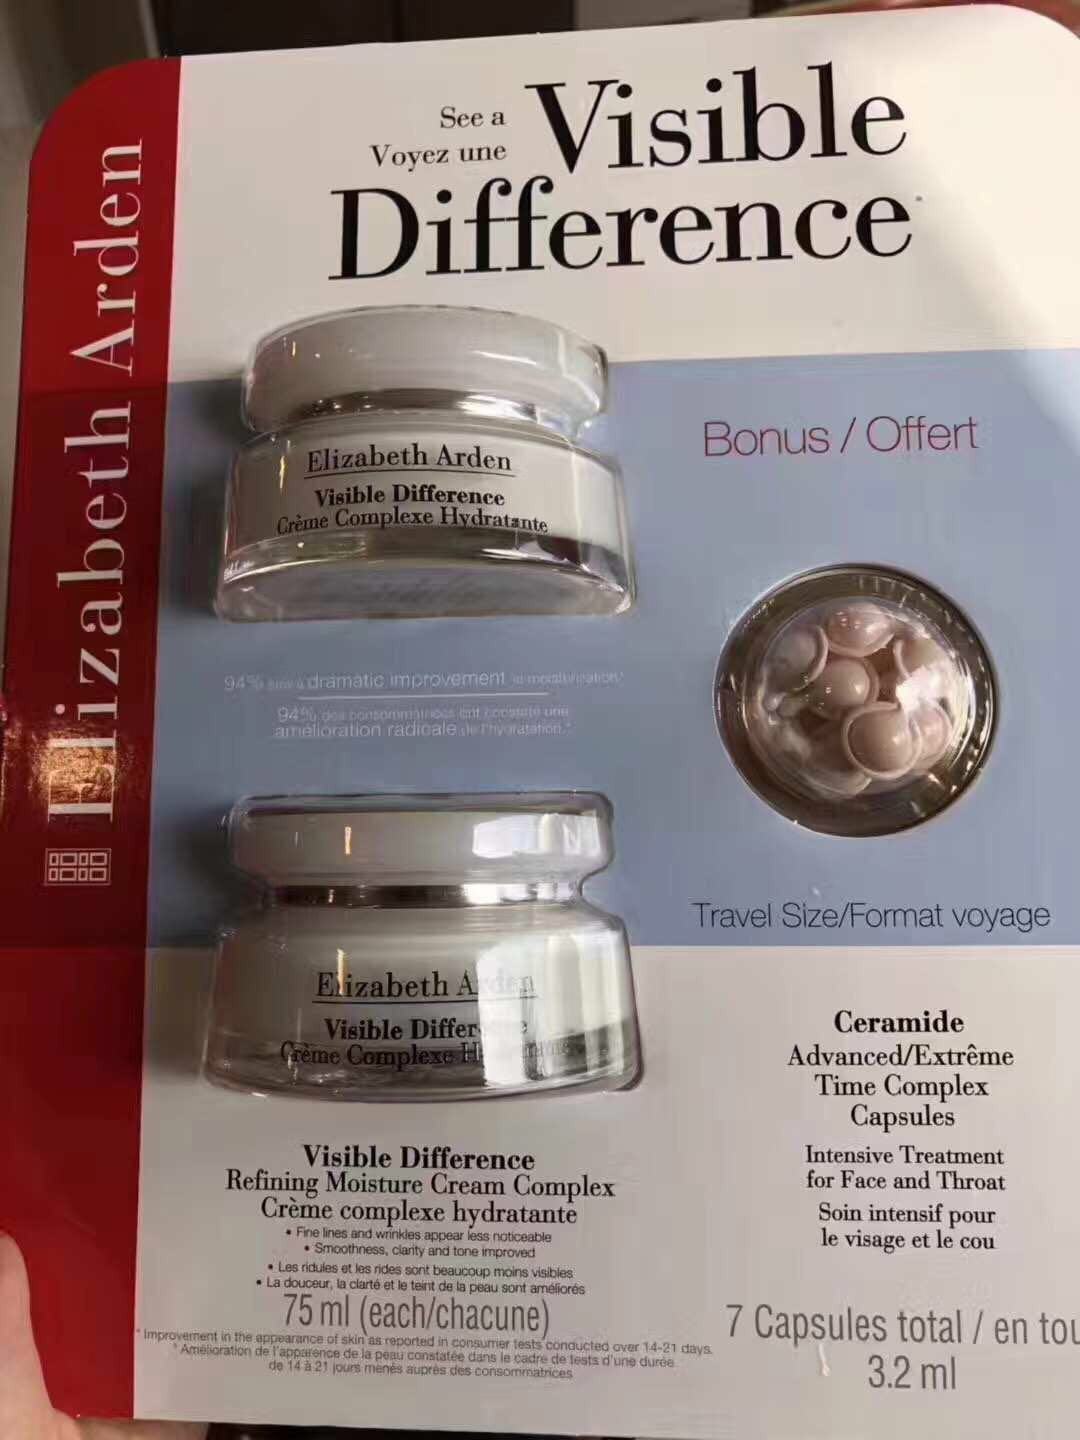 Elizabeth Arden Visible Difference, 雅顿面霜,75ml*2+7 Capsules Ceramide Face